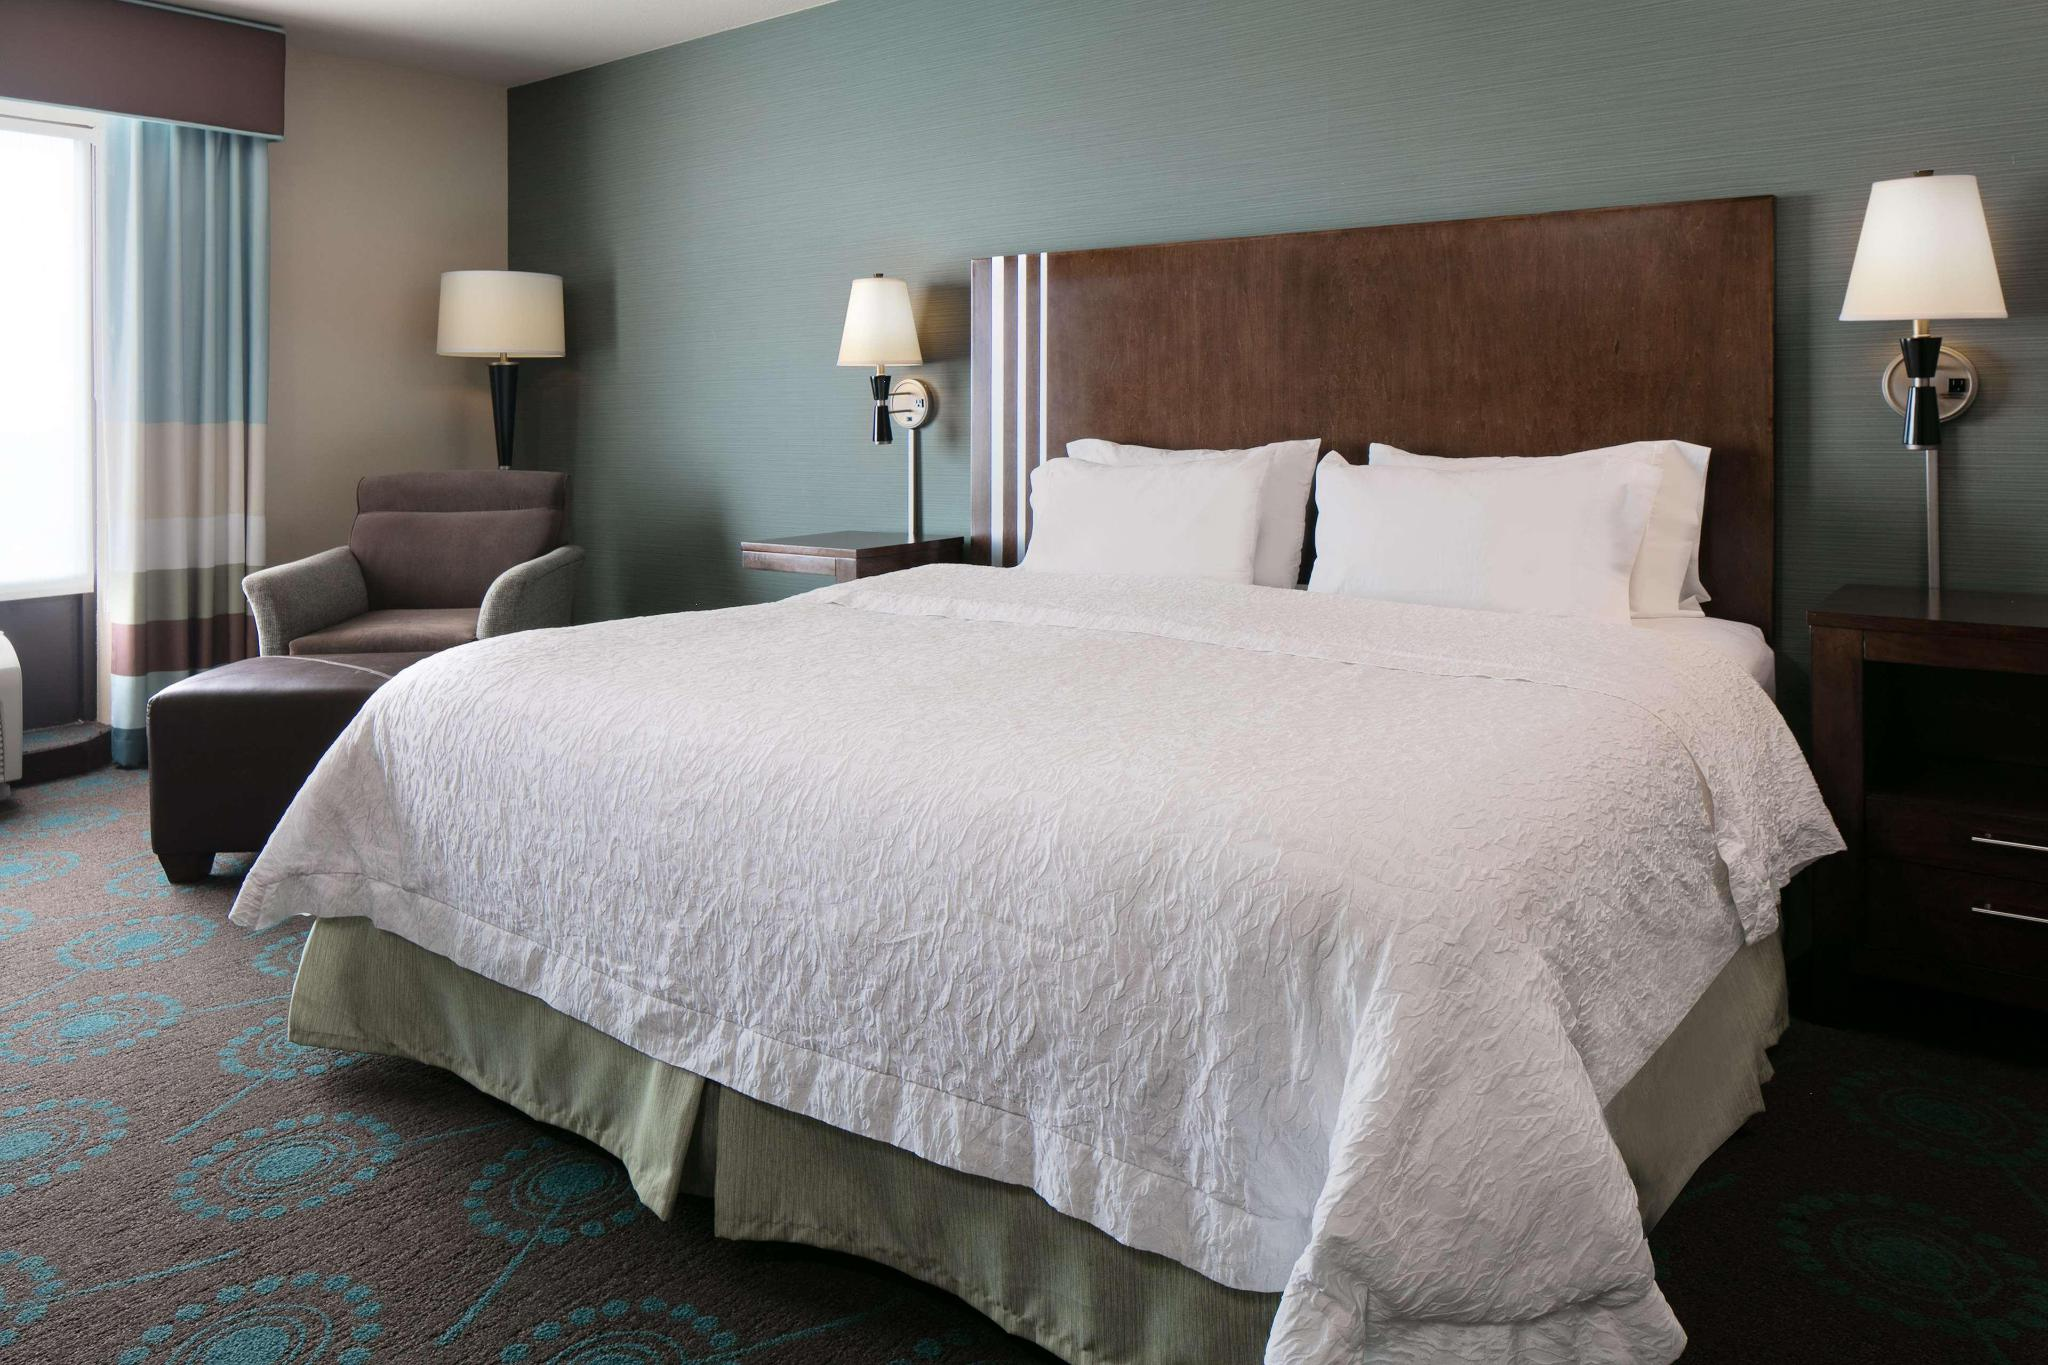 Suite king size bed